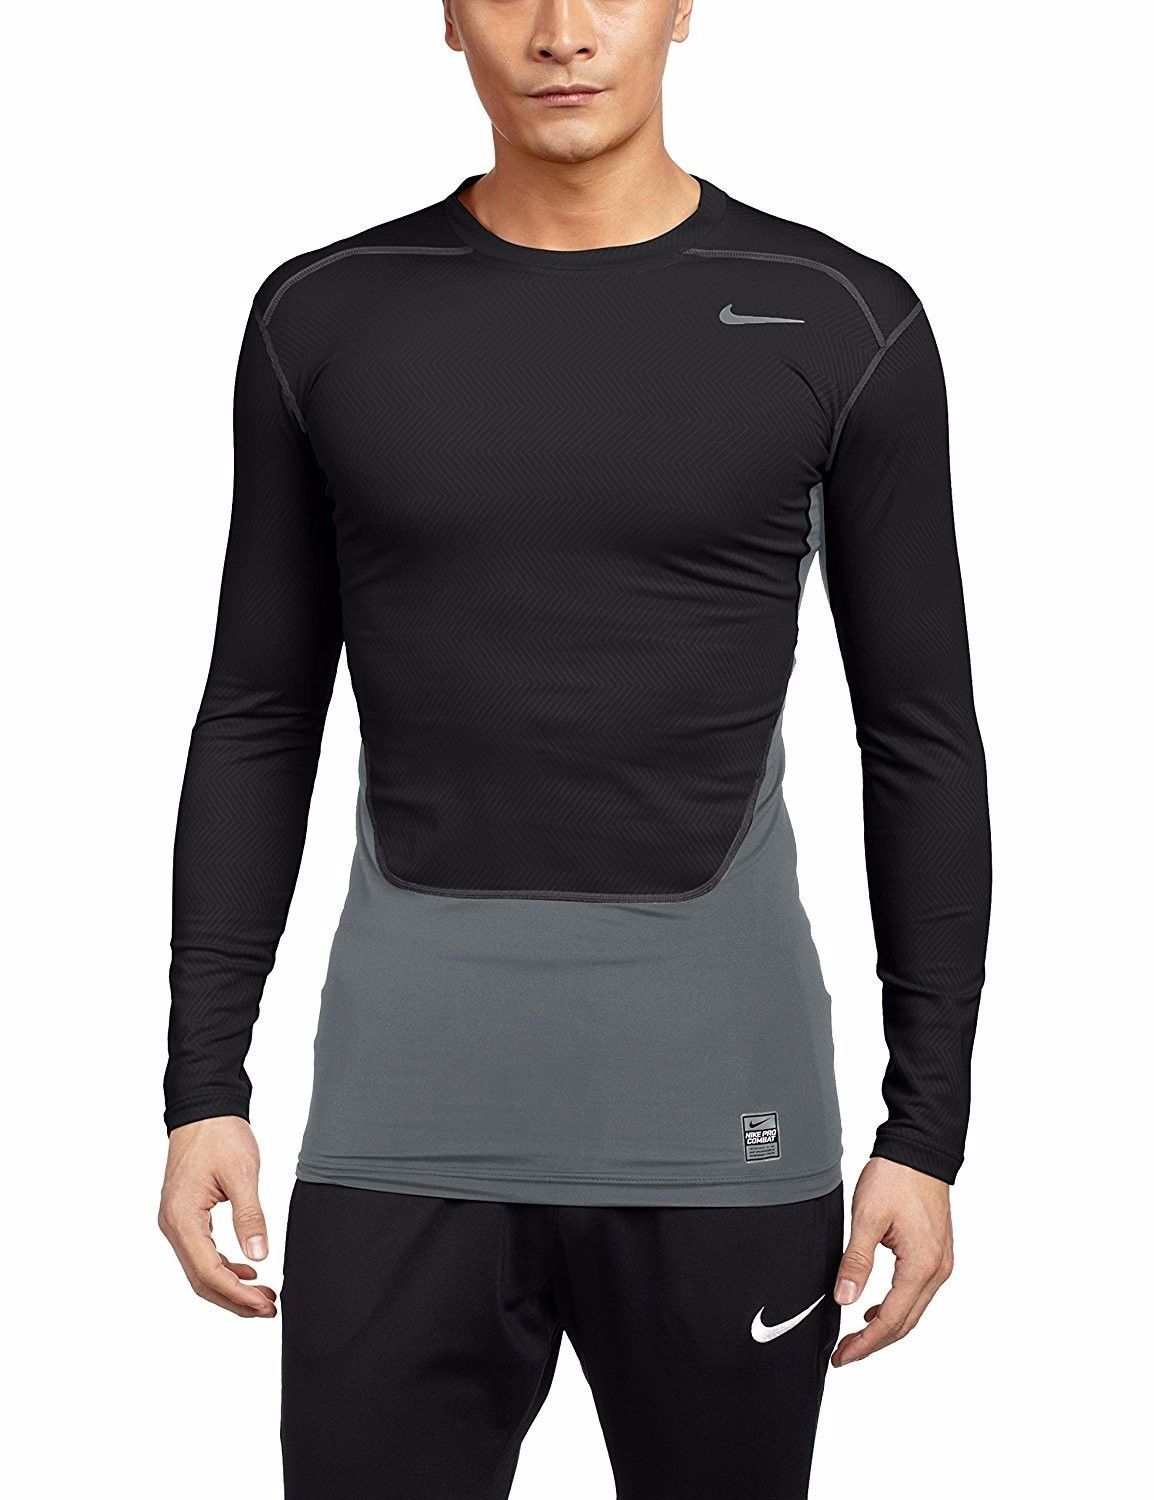 Gusseting And Ergonomic Seams Ensure A Full Range Of Unrestricted Movement With Dri Fit Technology To Wick Away Swe Compression Shirt Training Shirts Nike Men [ 1500 x 1154 Pixel ]